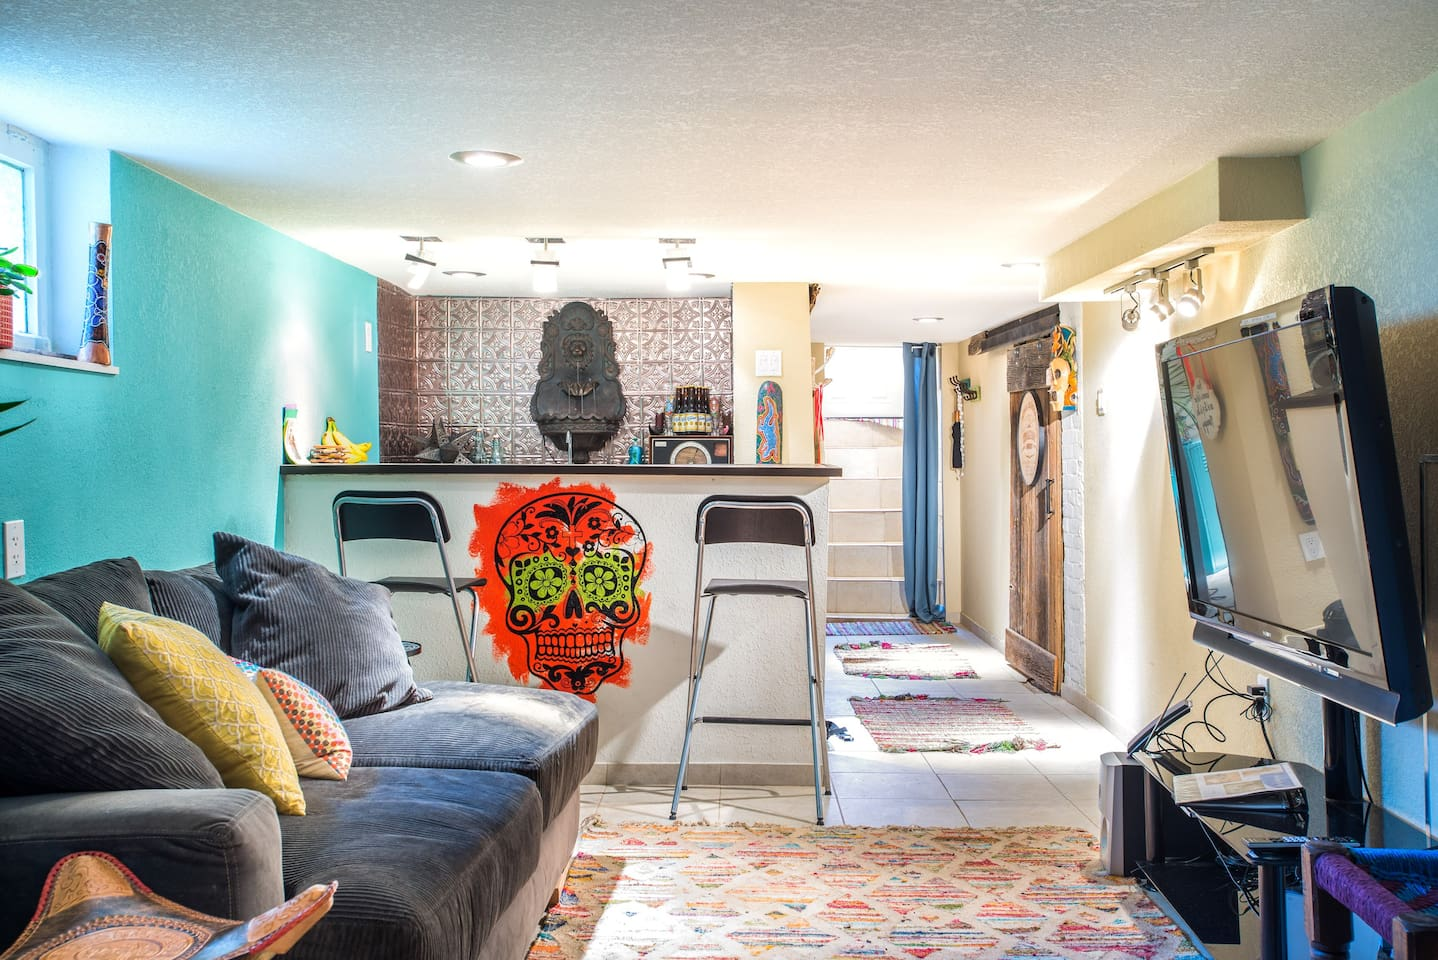 All yours with a private entrance - our remodeled basement apartment